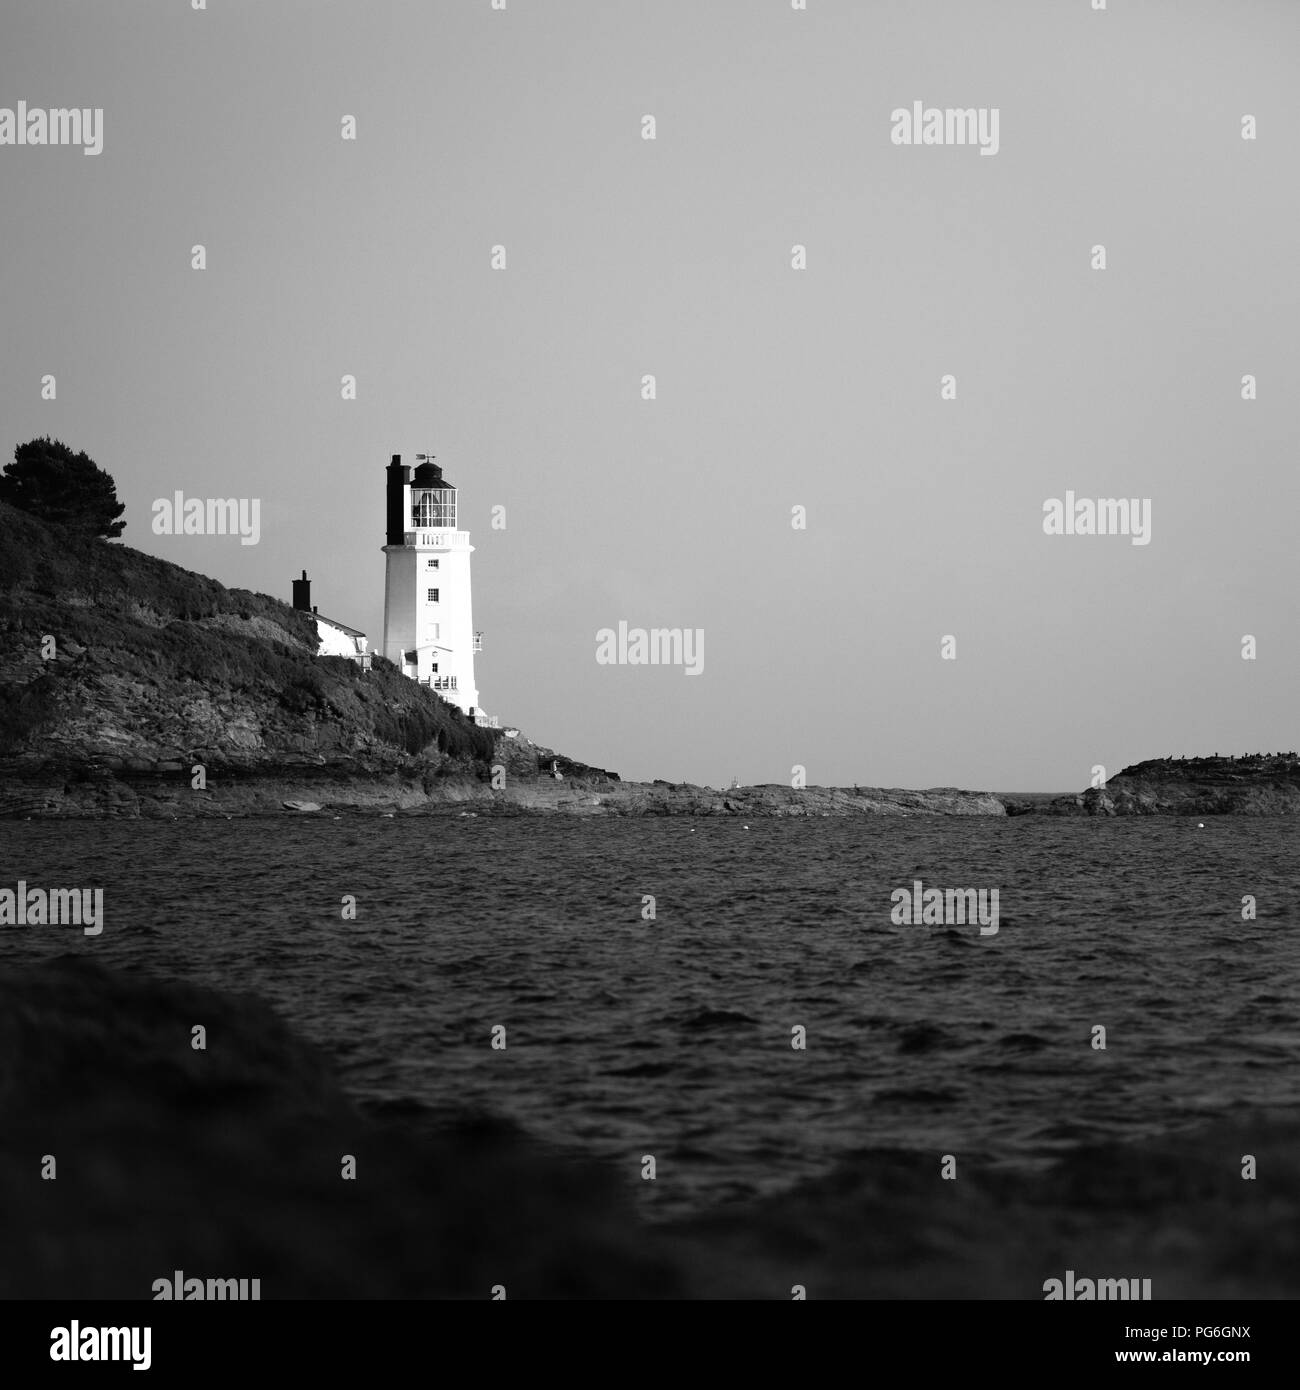 St Anthony's lighthouse marking the eastern point of the entrance to Falmouth Harbour, in Cornwall, southern England, United Kingdom - Stock Image